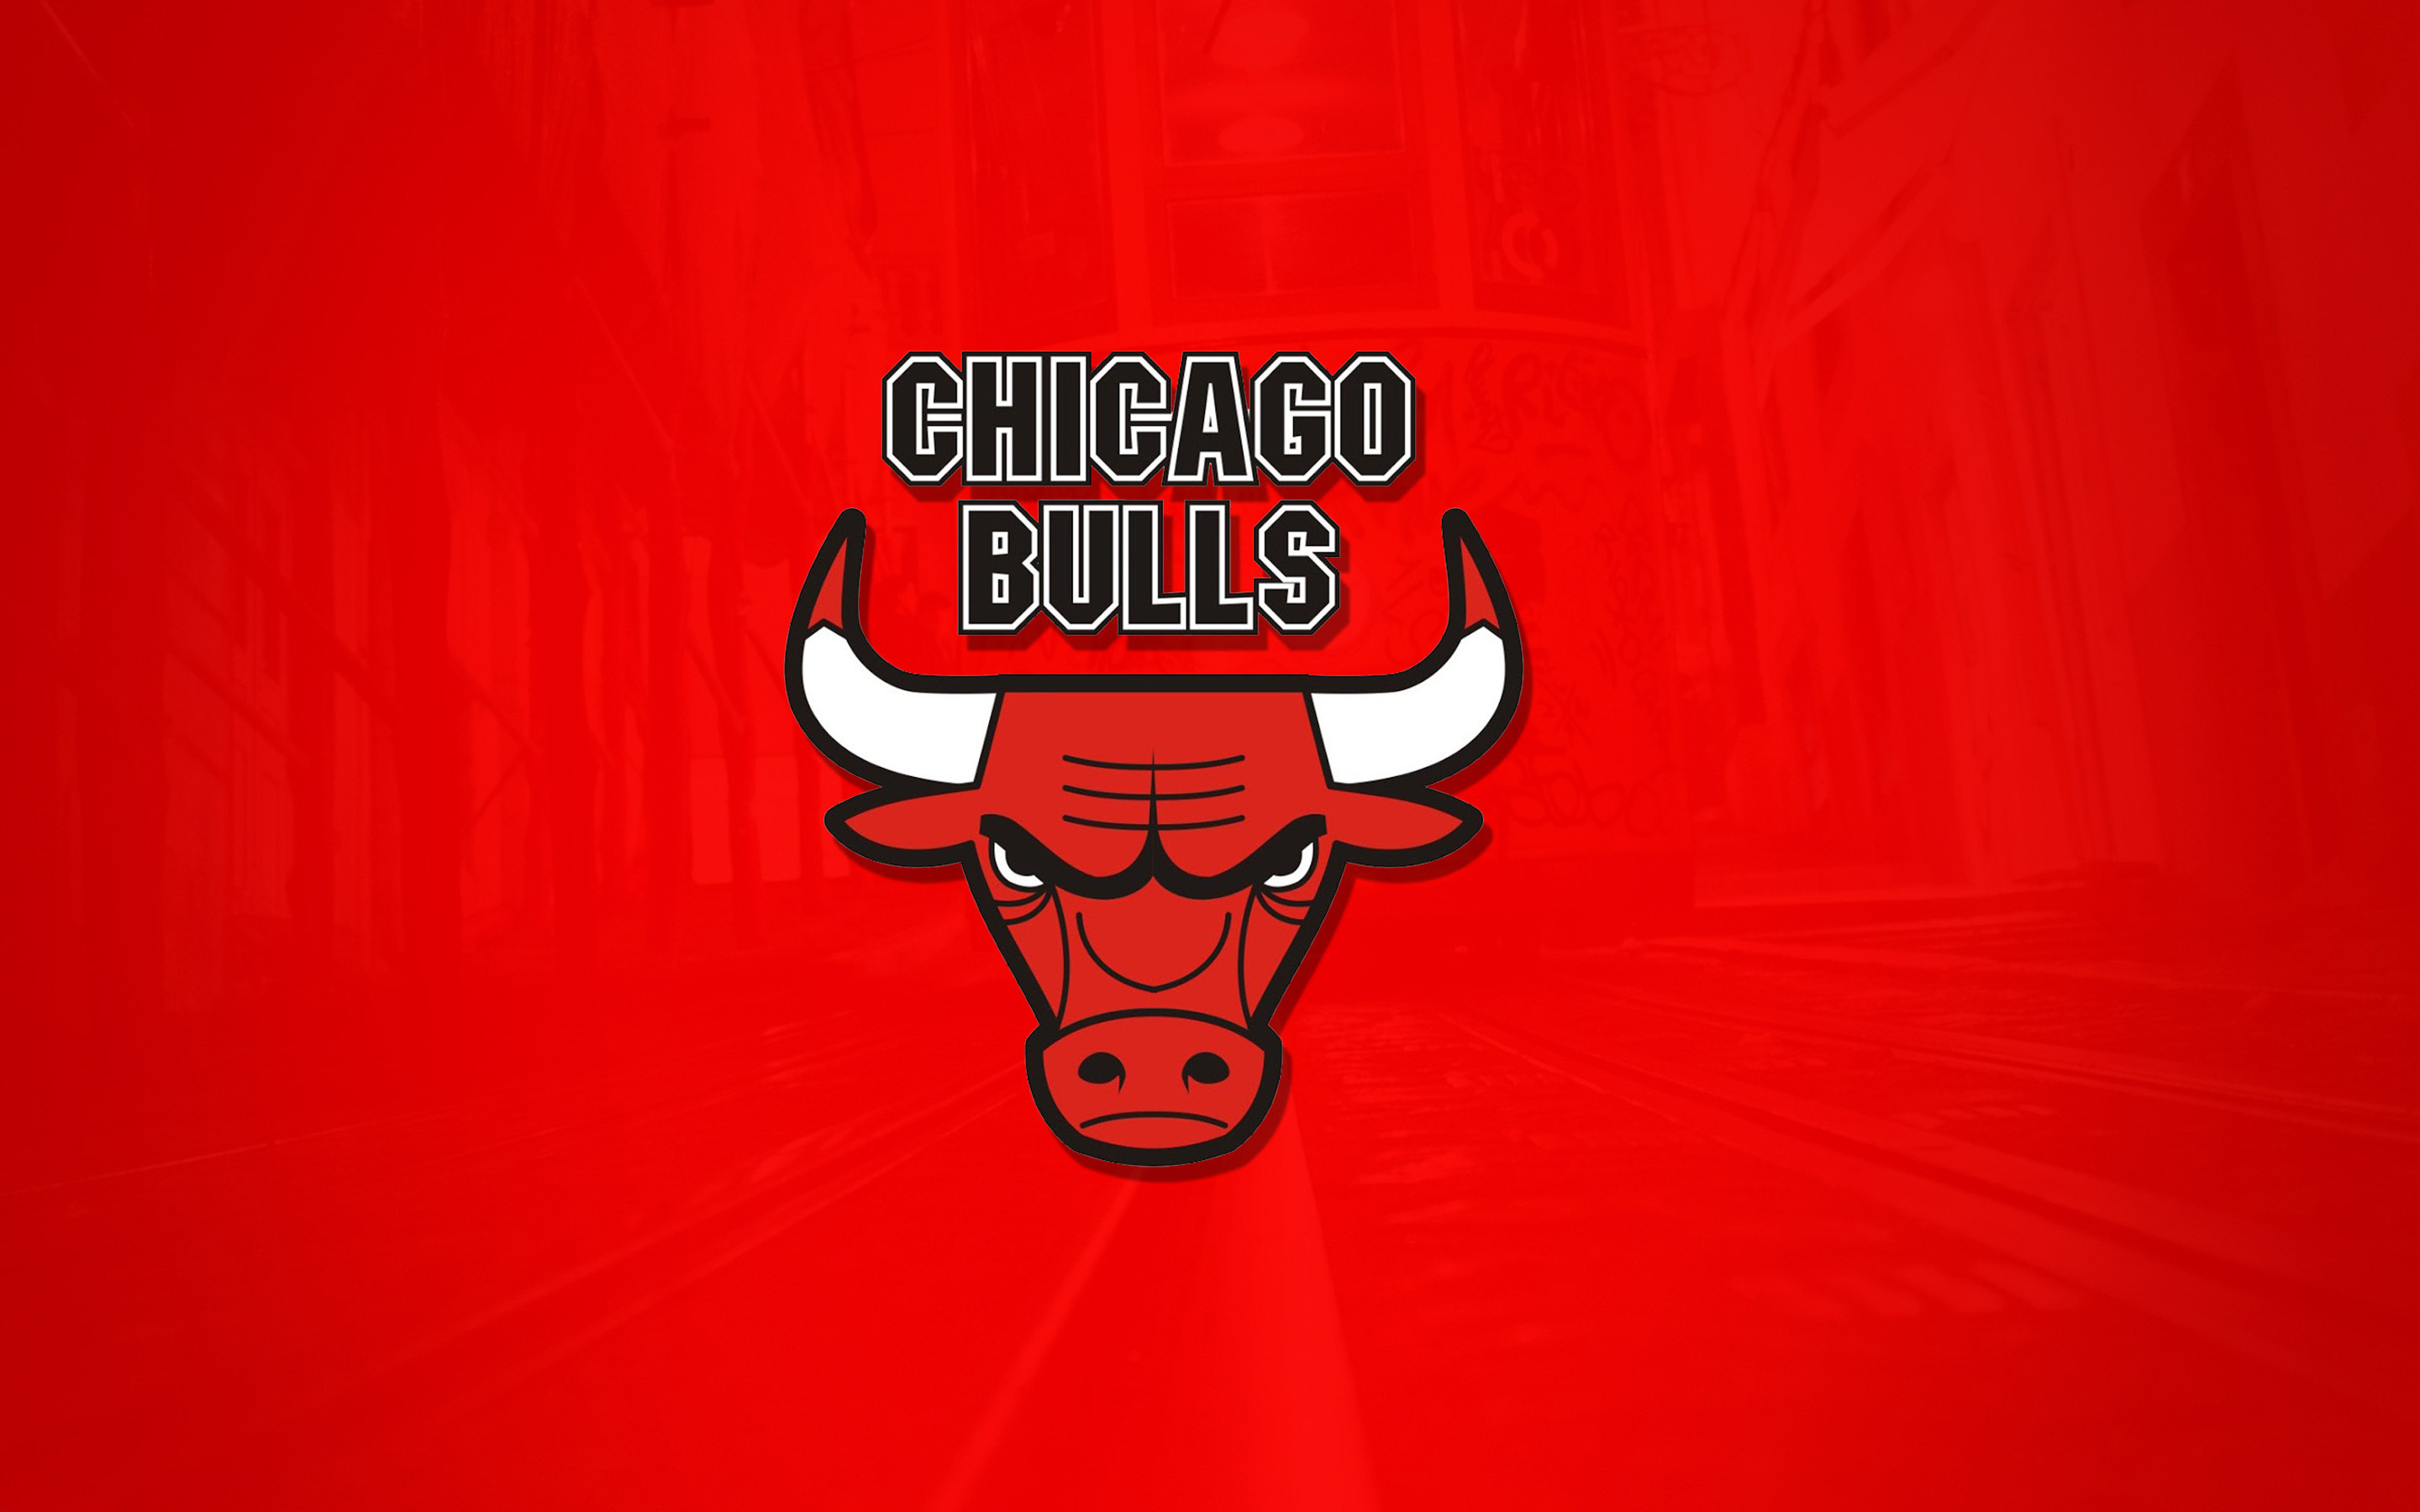 Chicago Bulls Wallpaper HD 2018